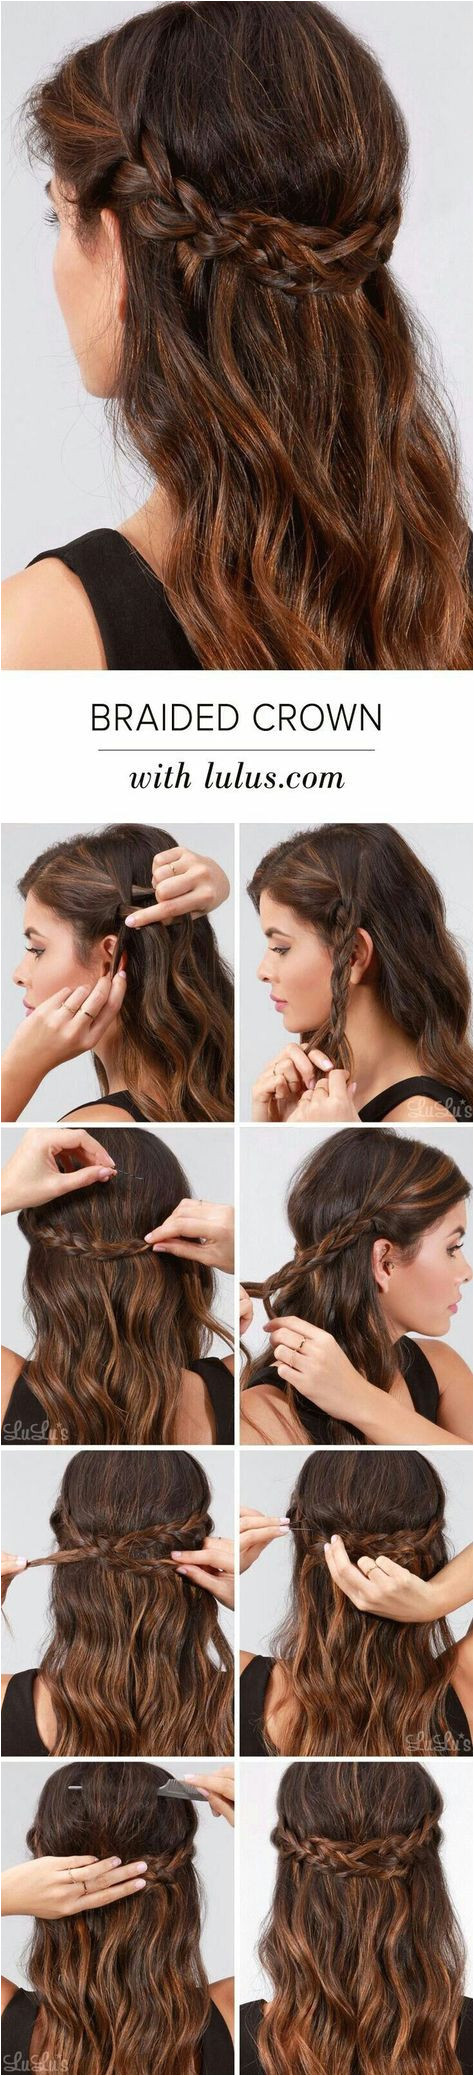 45 Step by Step Hair Tutorials For The Beauties In Town Braided HairstylesVery Easy HairstylesHairstyle IdeasCute